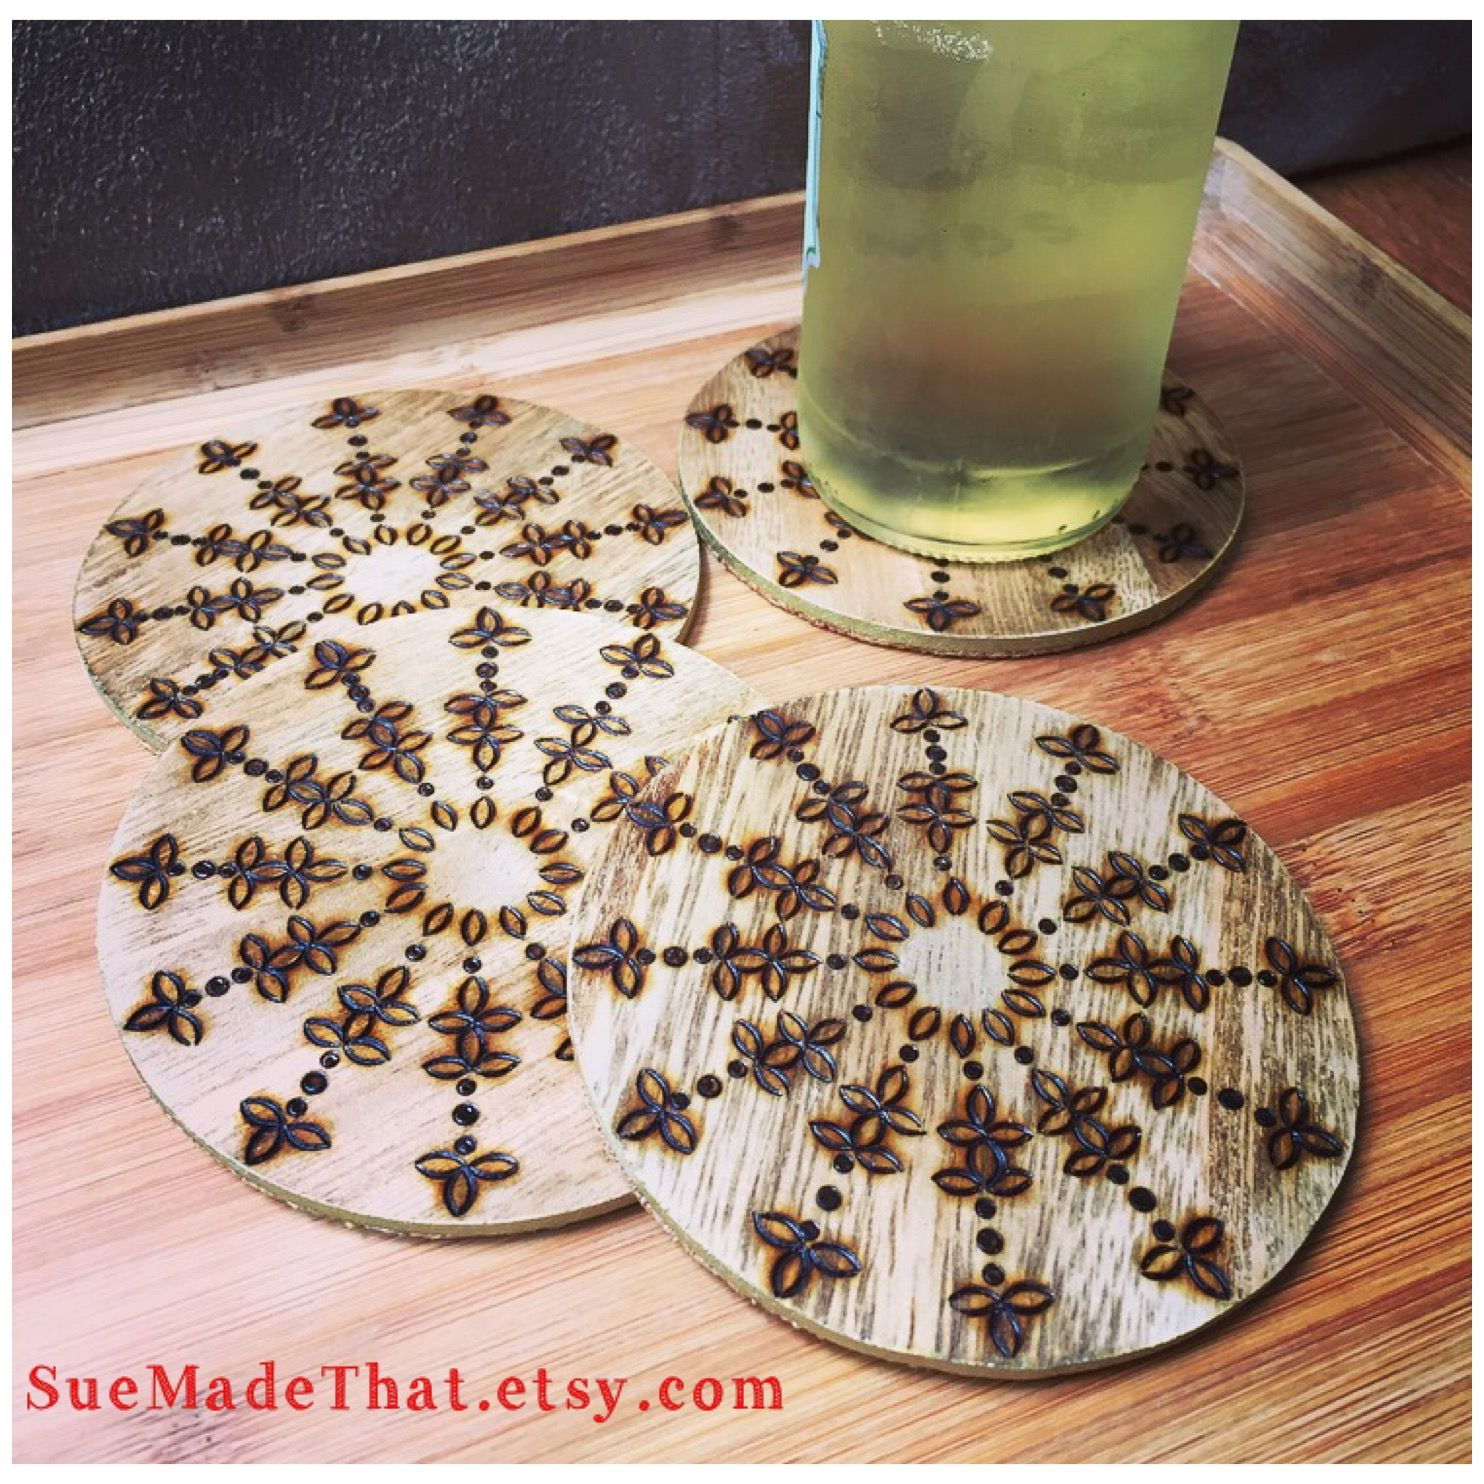 Woodburned coasters for your favorite beverage at